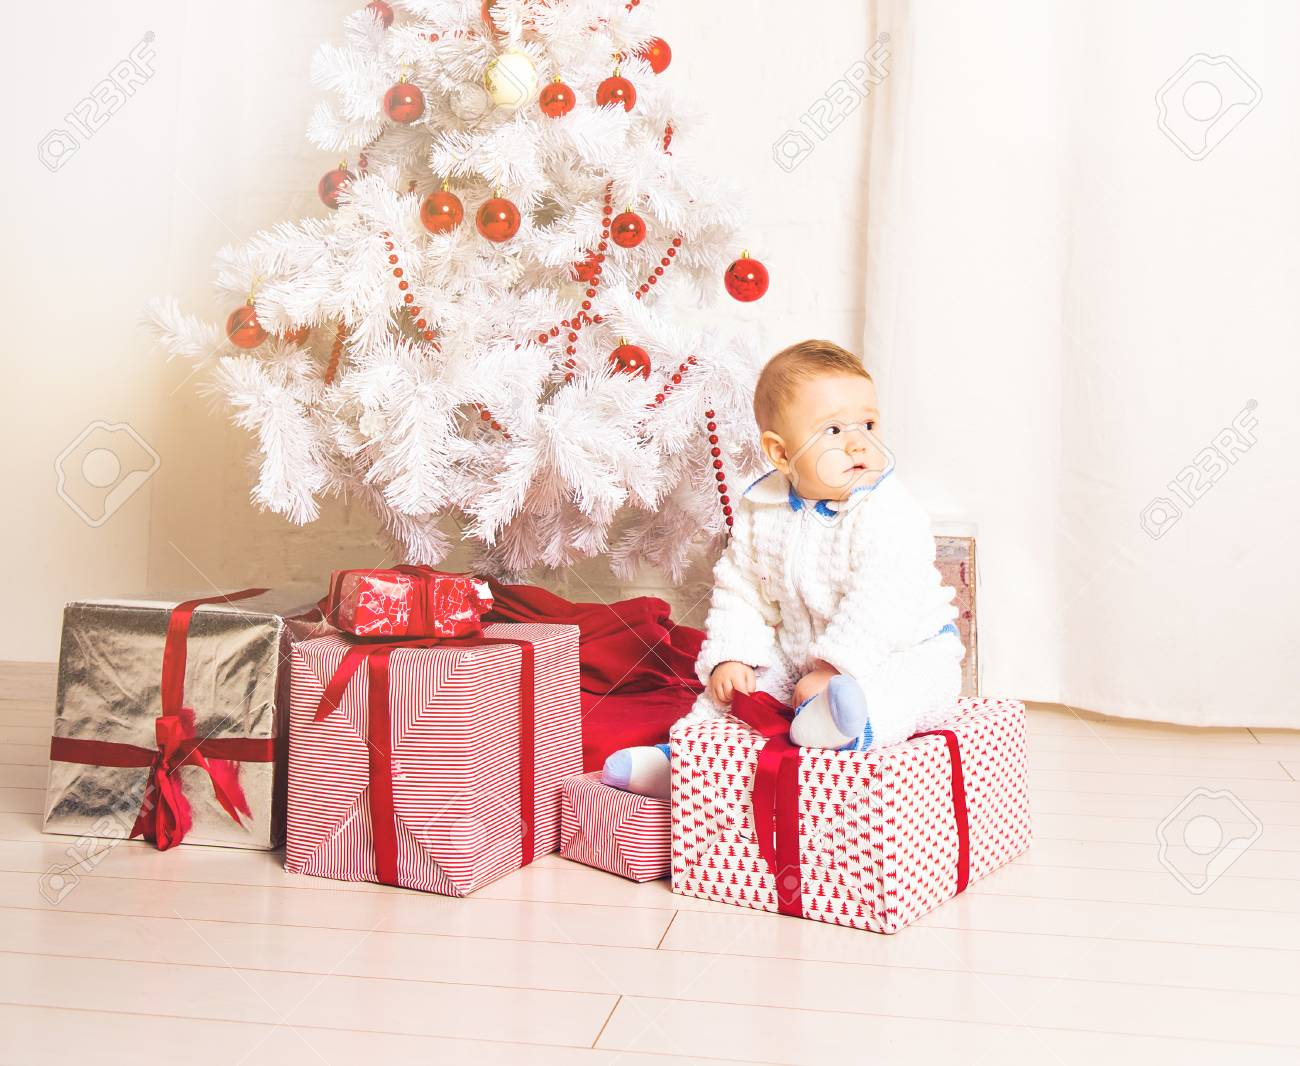 Christmas Crafts For 1 Year Olds.Baby 1 Year Old Sitting On Gift Box With Christmas Tree Merry